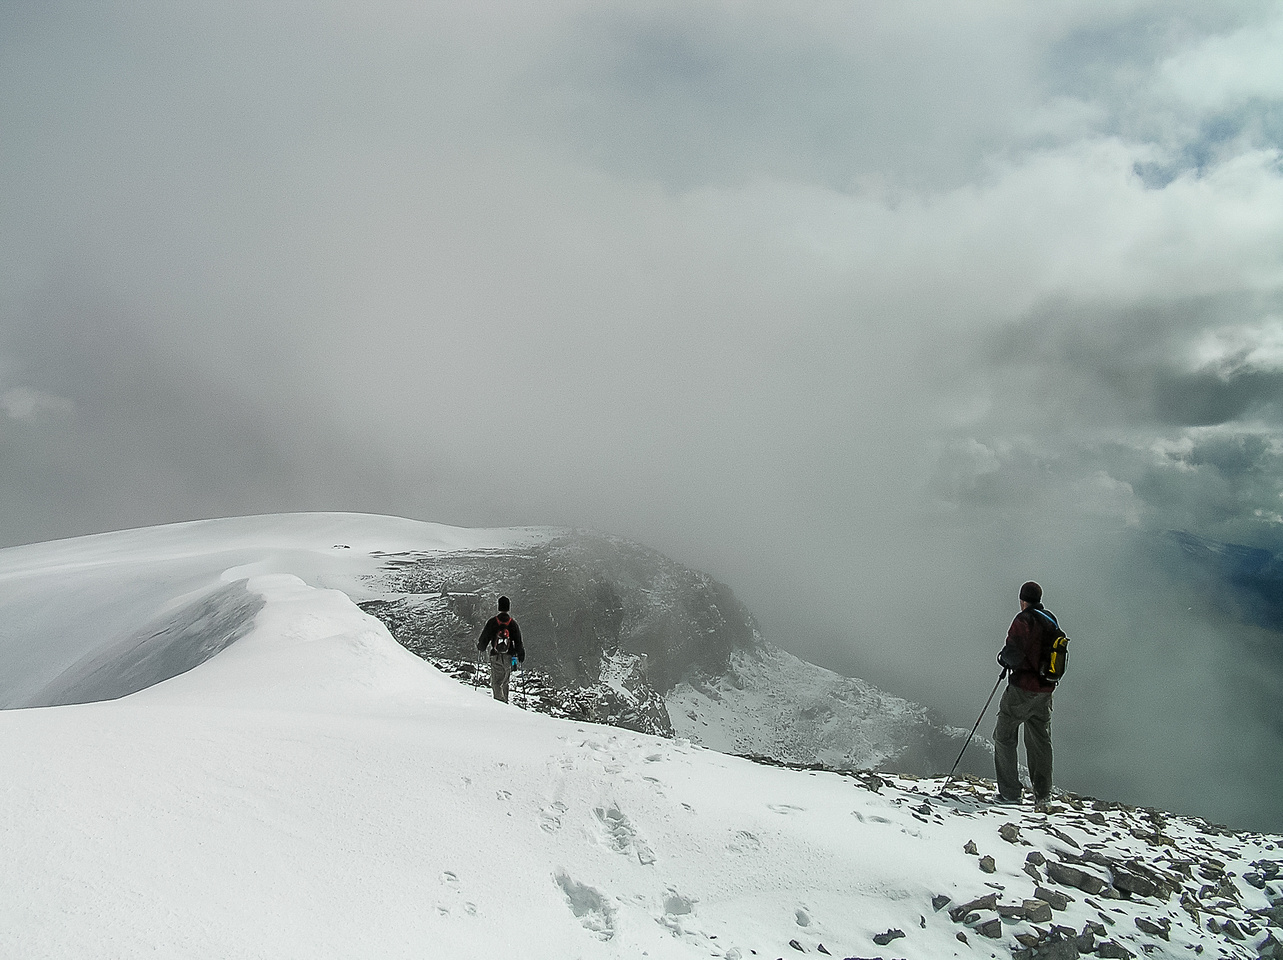 The clouds swirl around us at the summit.